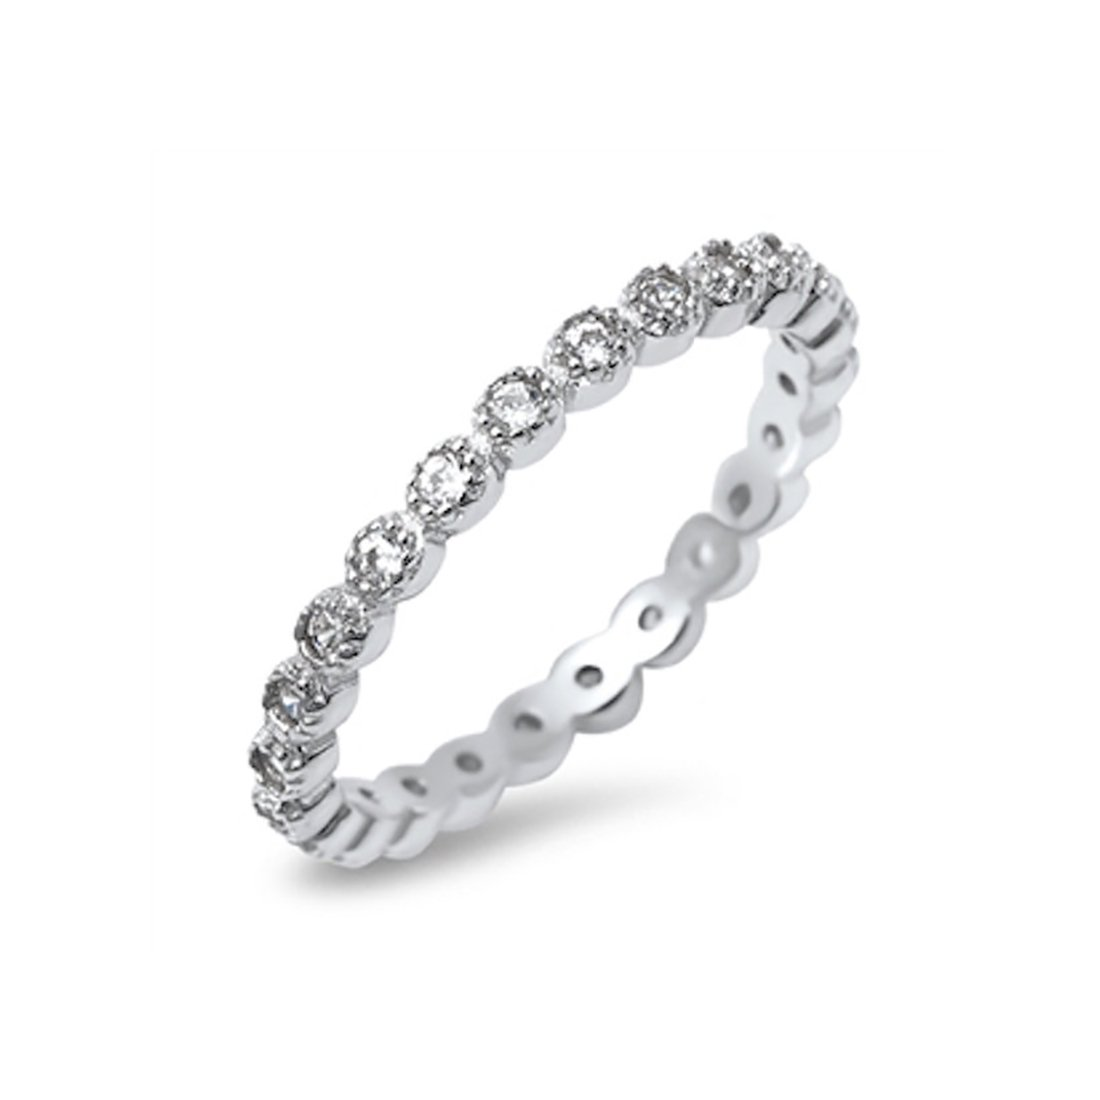 3MM Full Eternity Stackable Ladies Wedding Engagement Band Ring Cubic Zirconia Round 925 Sterling Silver